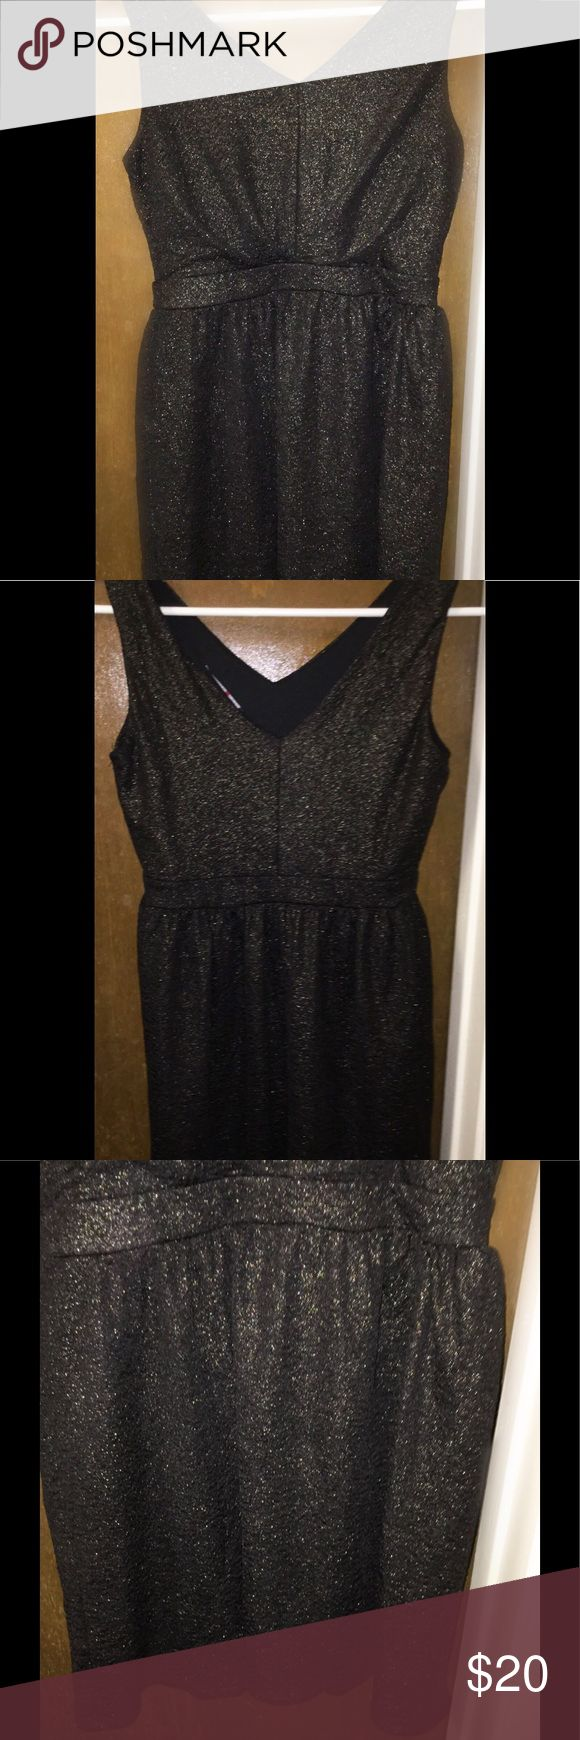 One Clothing Sz Large Sparkly Brown Cocktail Dress This is a sparkly brown-black cocktail dress from One Clothing. It is a size large. It has a deep V-neck and even deeper V-back. This is sleeveless with a belted waist and flowy skirt. Excellent condition. No rips or stains or tears. This is a great dress for a night out. one clothing Dresses